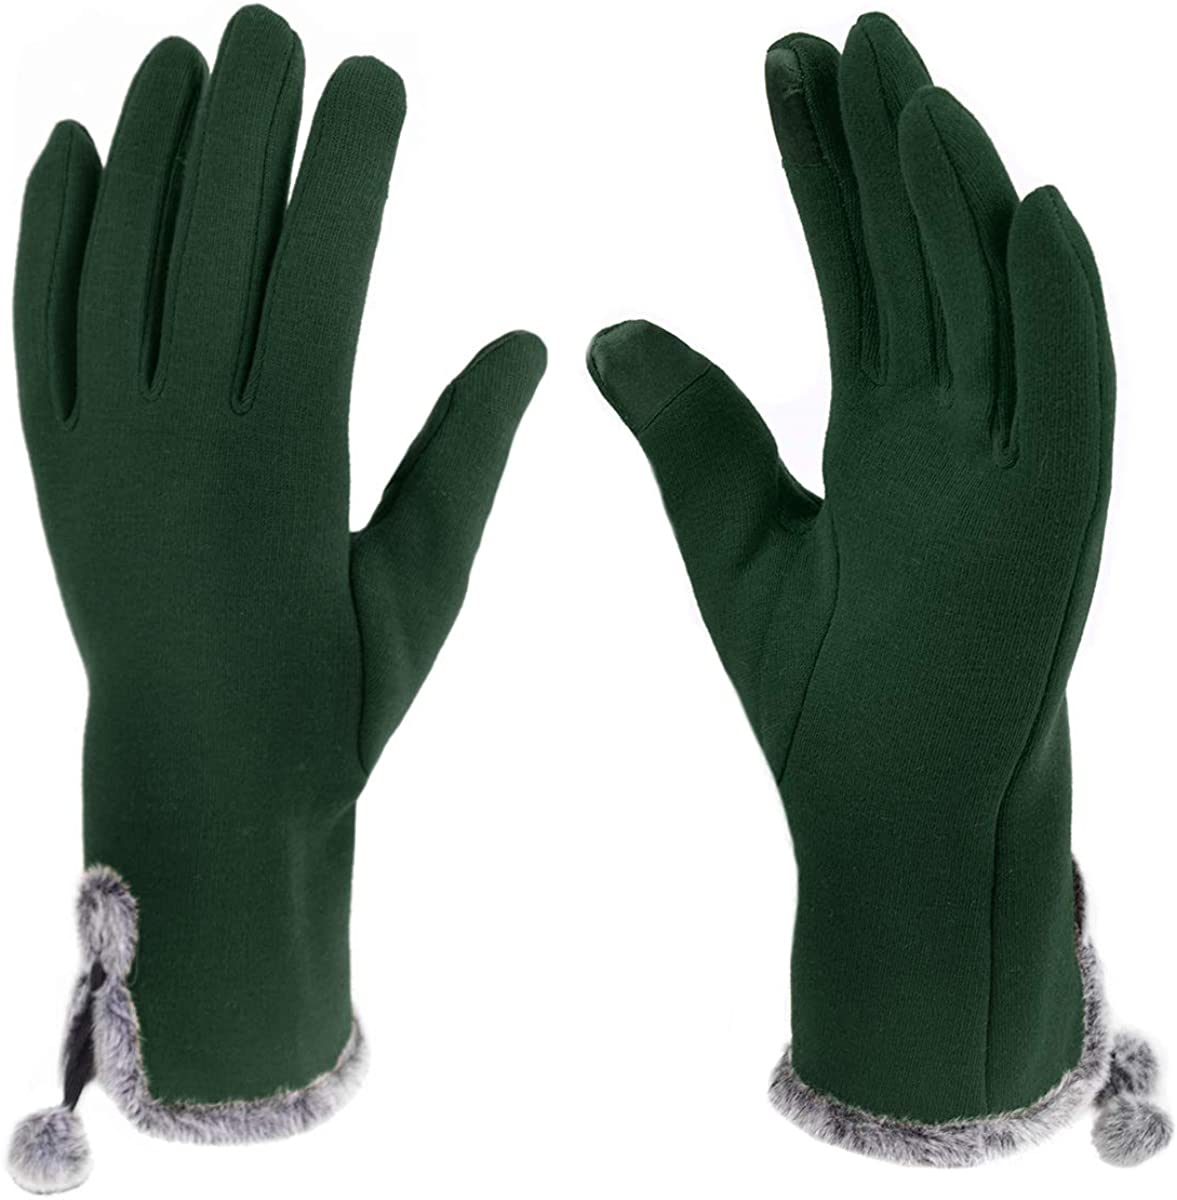 Nollia Winter Gloves & Mittens for Women + Gloves for Cold Weather